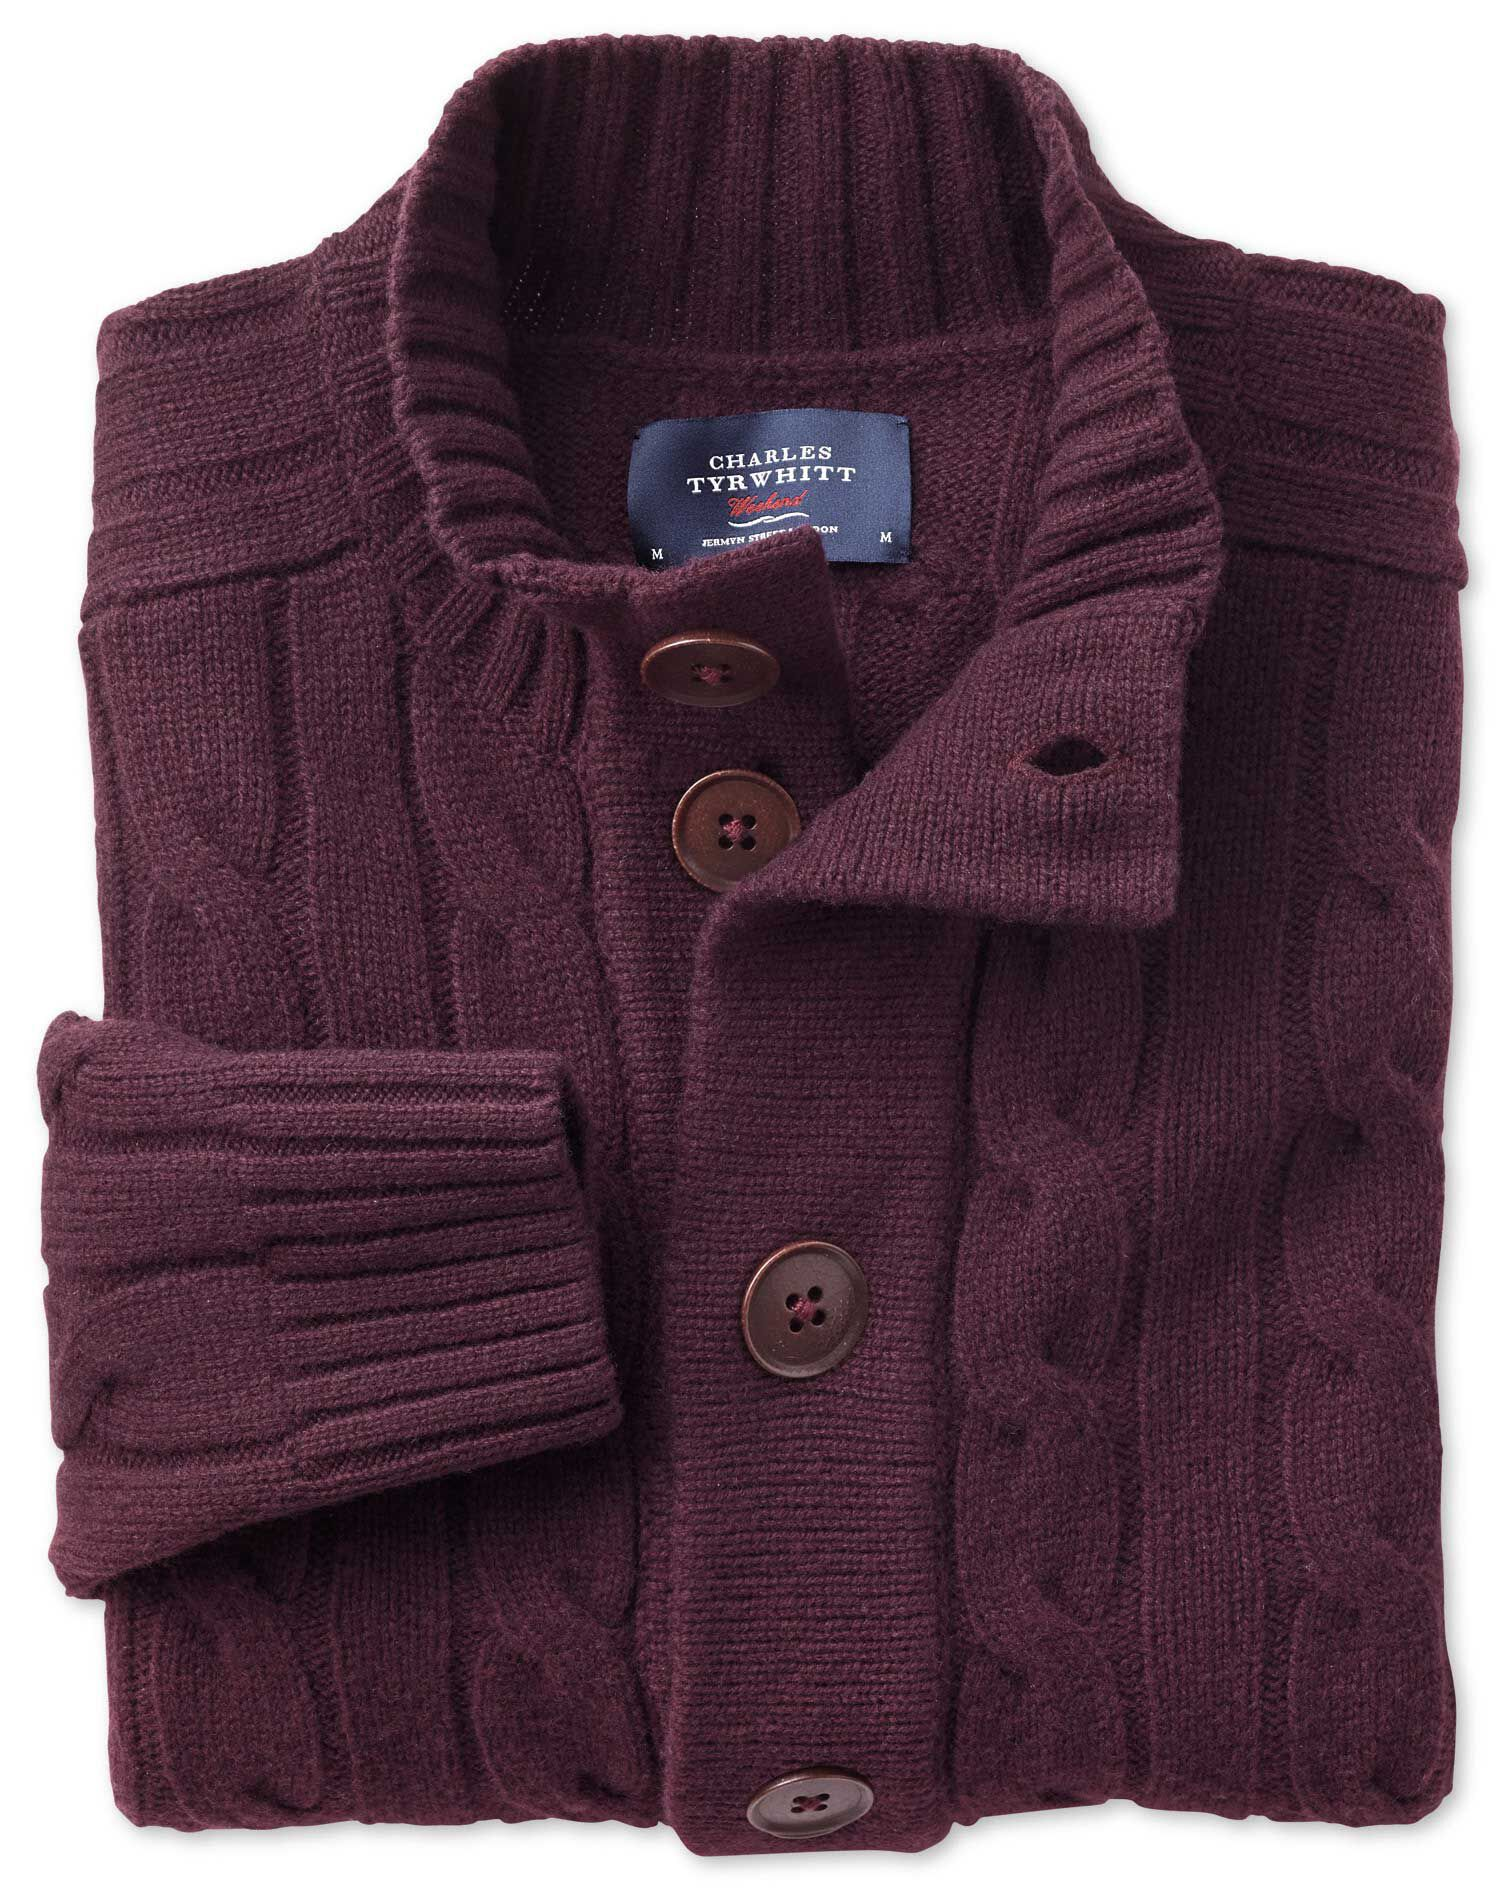 Wine Lambswool Cable Cardigan Size Small by Charles Tyrwhitt